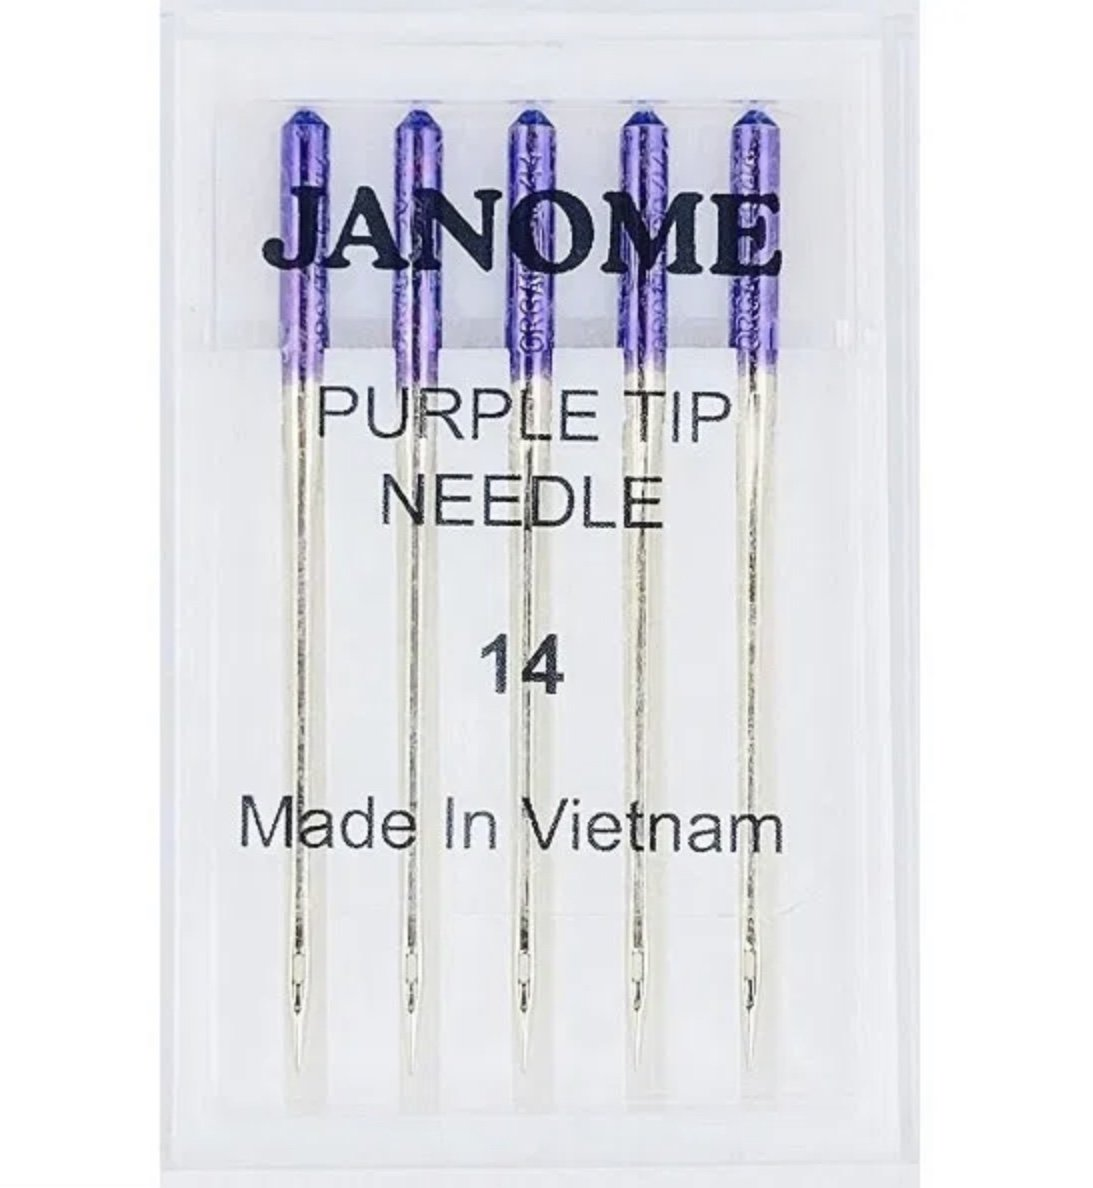 Janome Needles Purple Tip- Size14 pkt of 5